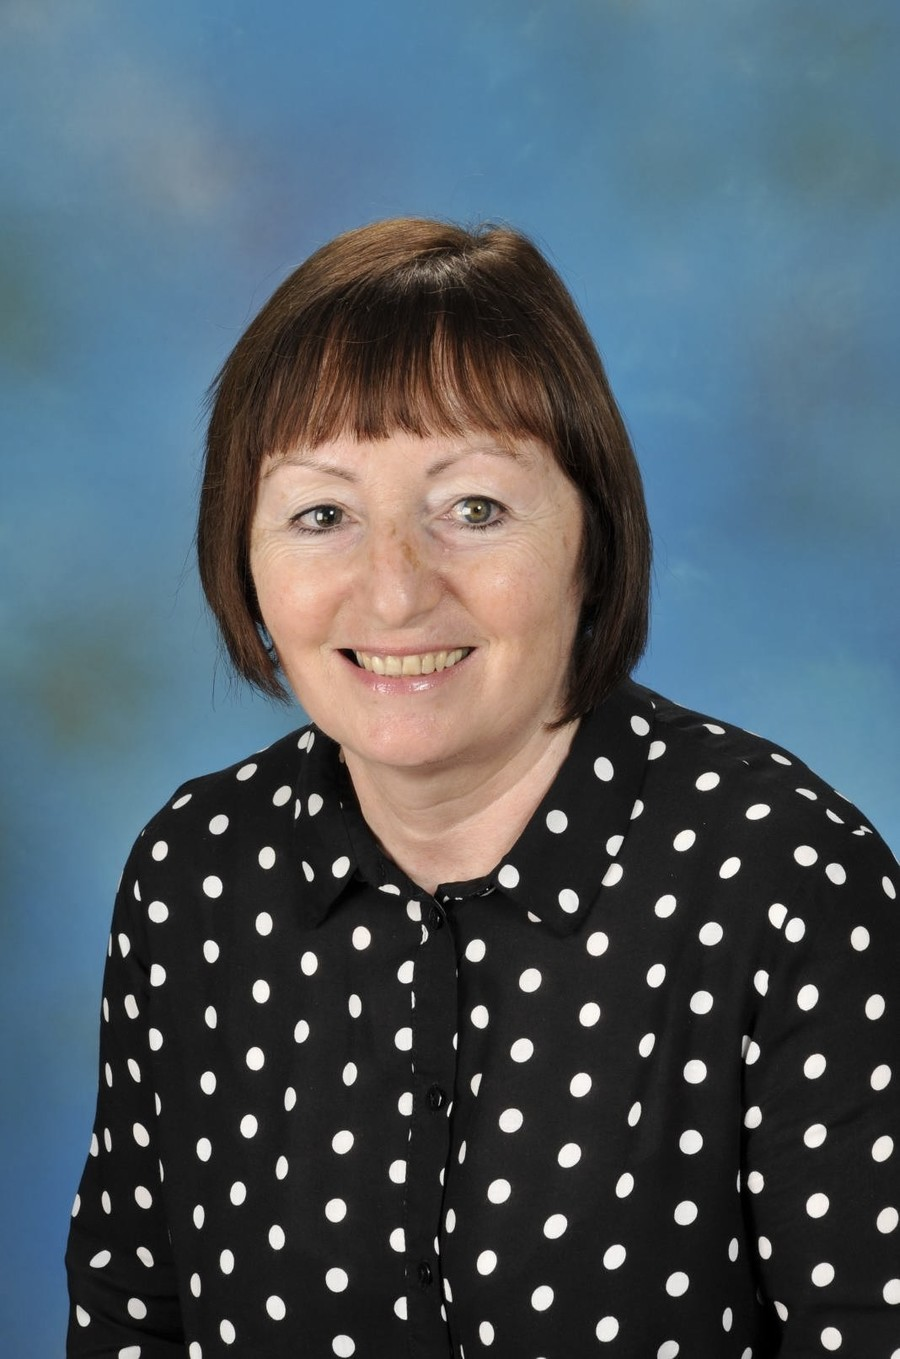 Mrs J Christie - Teaching Assistant